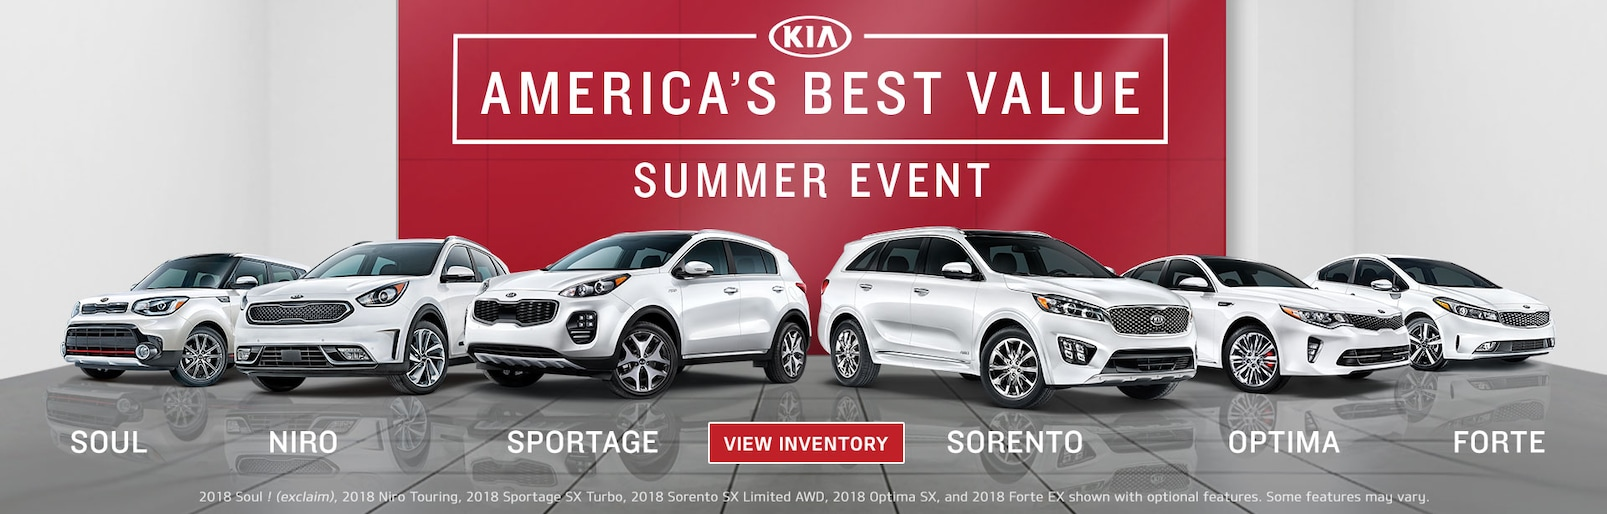 kia butler more the powerhouse be badges from la with dealers jbk renowned prior updated compete just not european teases recognizable new cadenza louis able and expensive st in will jim to